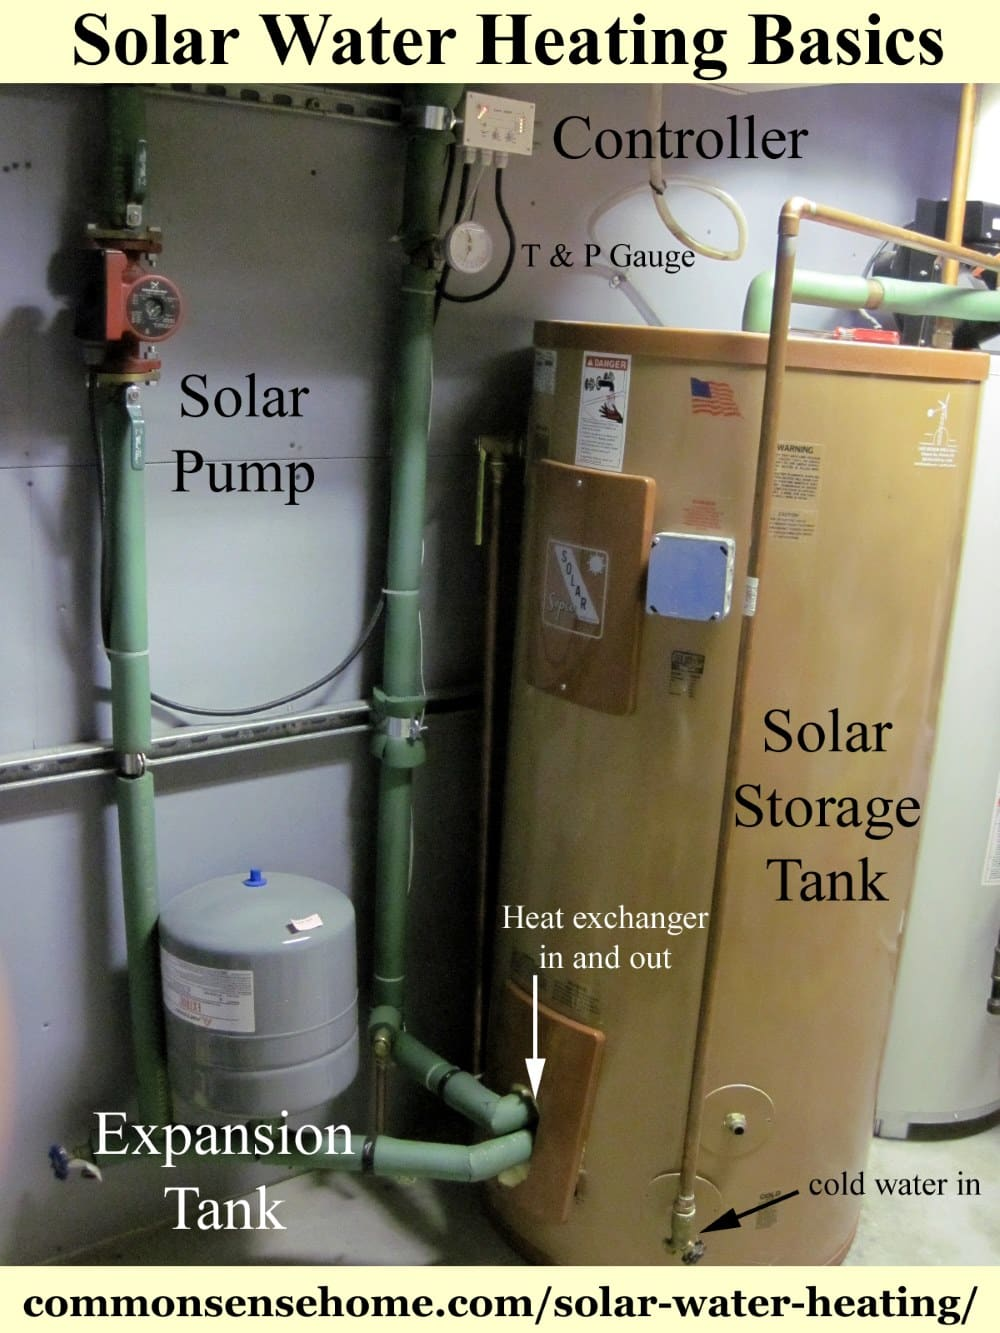 Solar Water Heating Basics - What You Need to Heat Water with the Sun